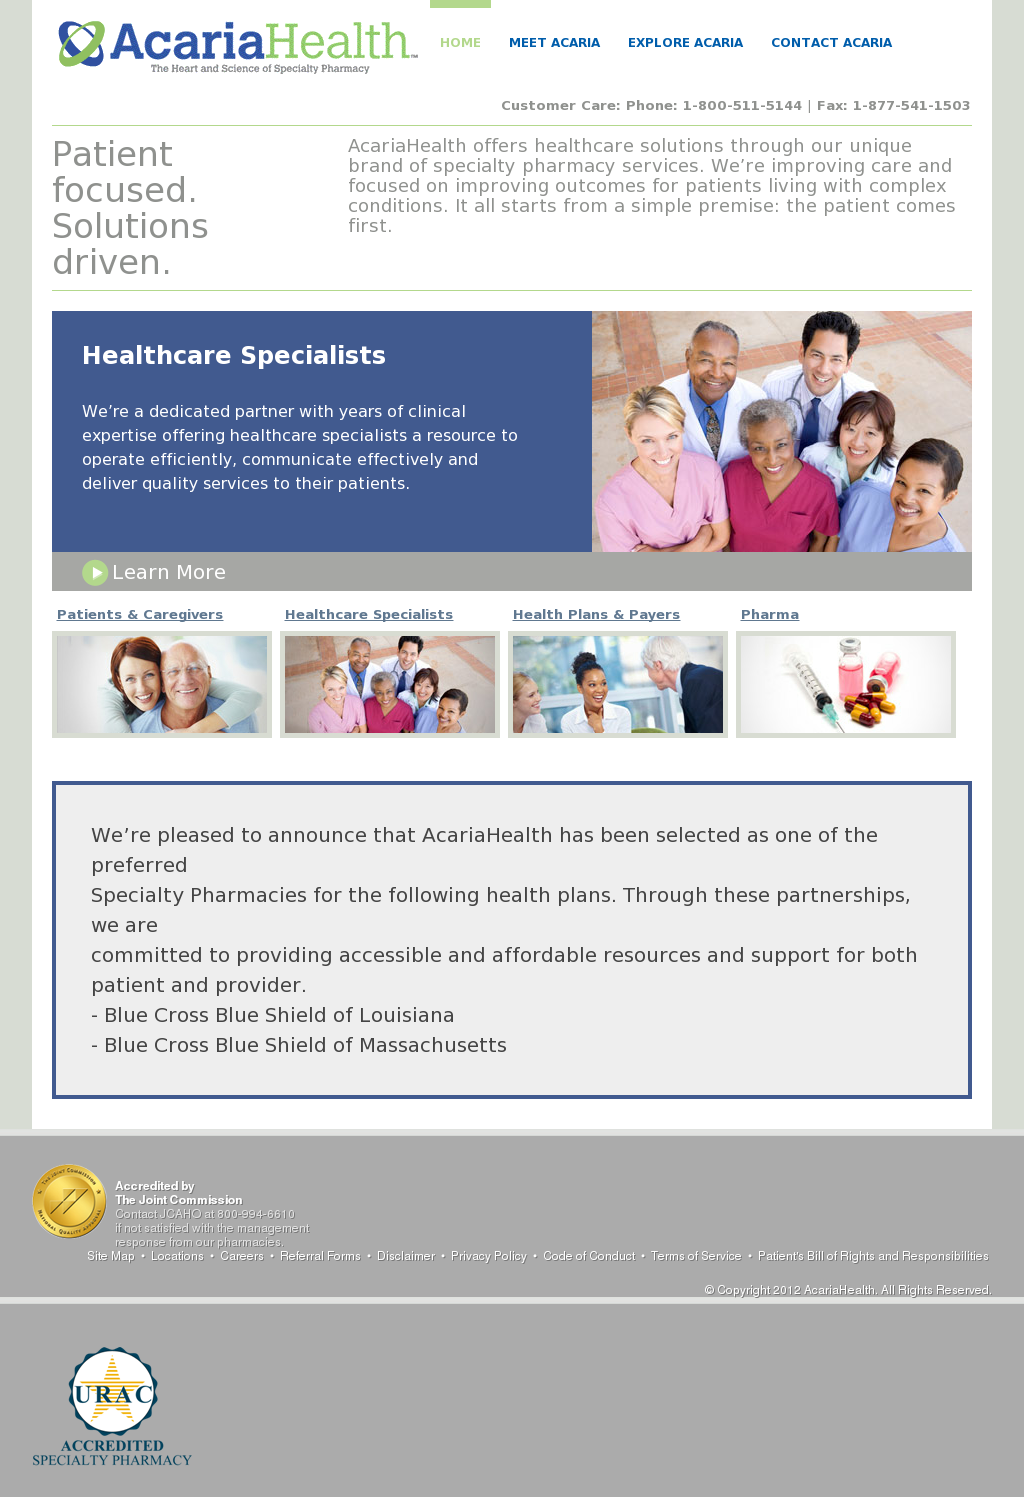 AcariaHealth Competitors, Revenue and Employees - Owler Company Profile